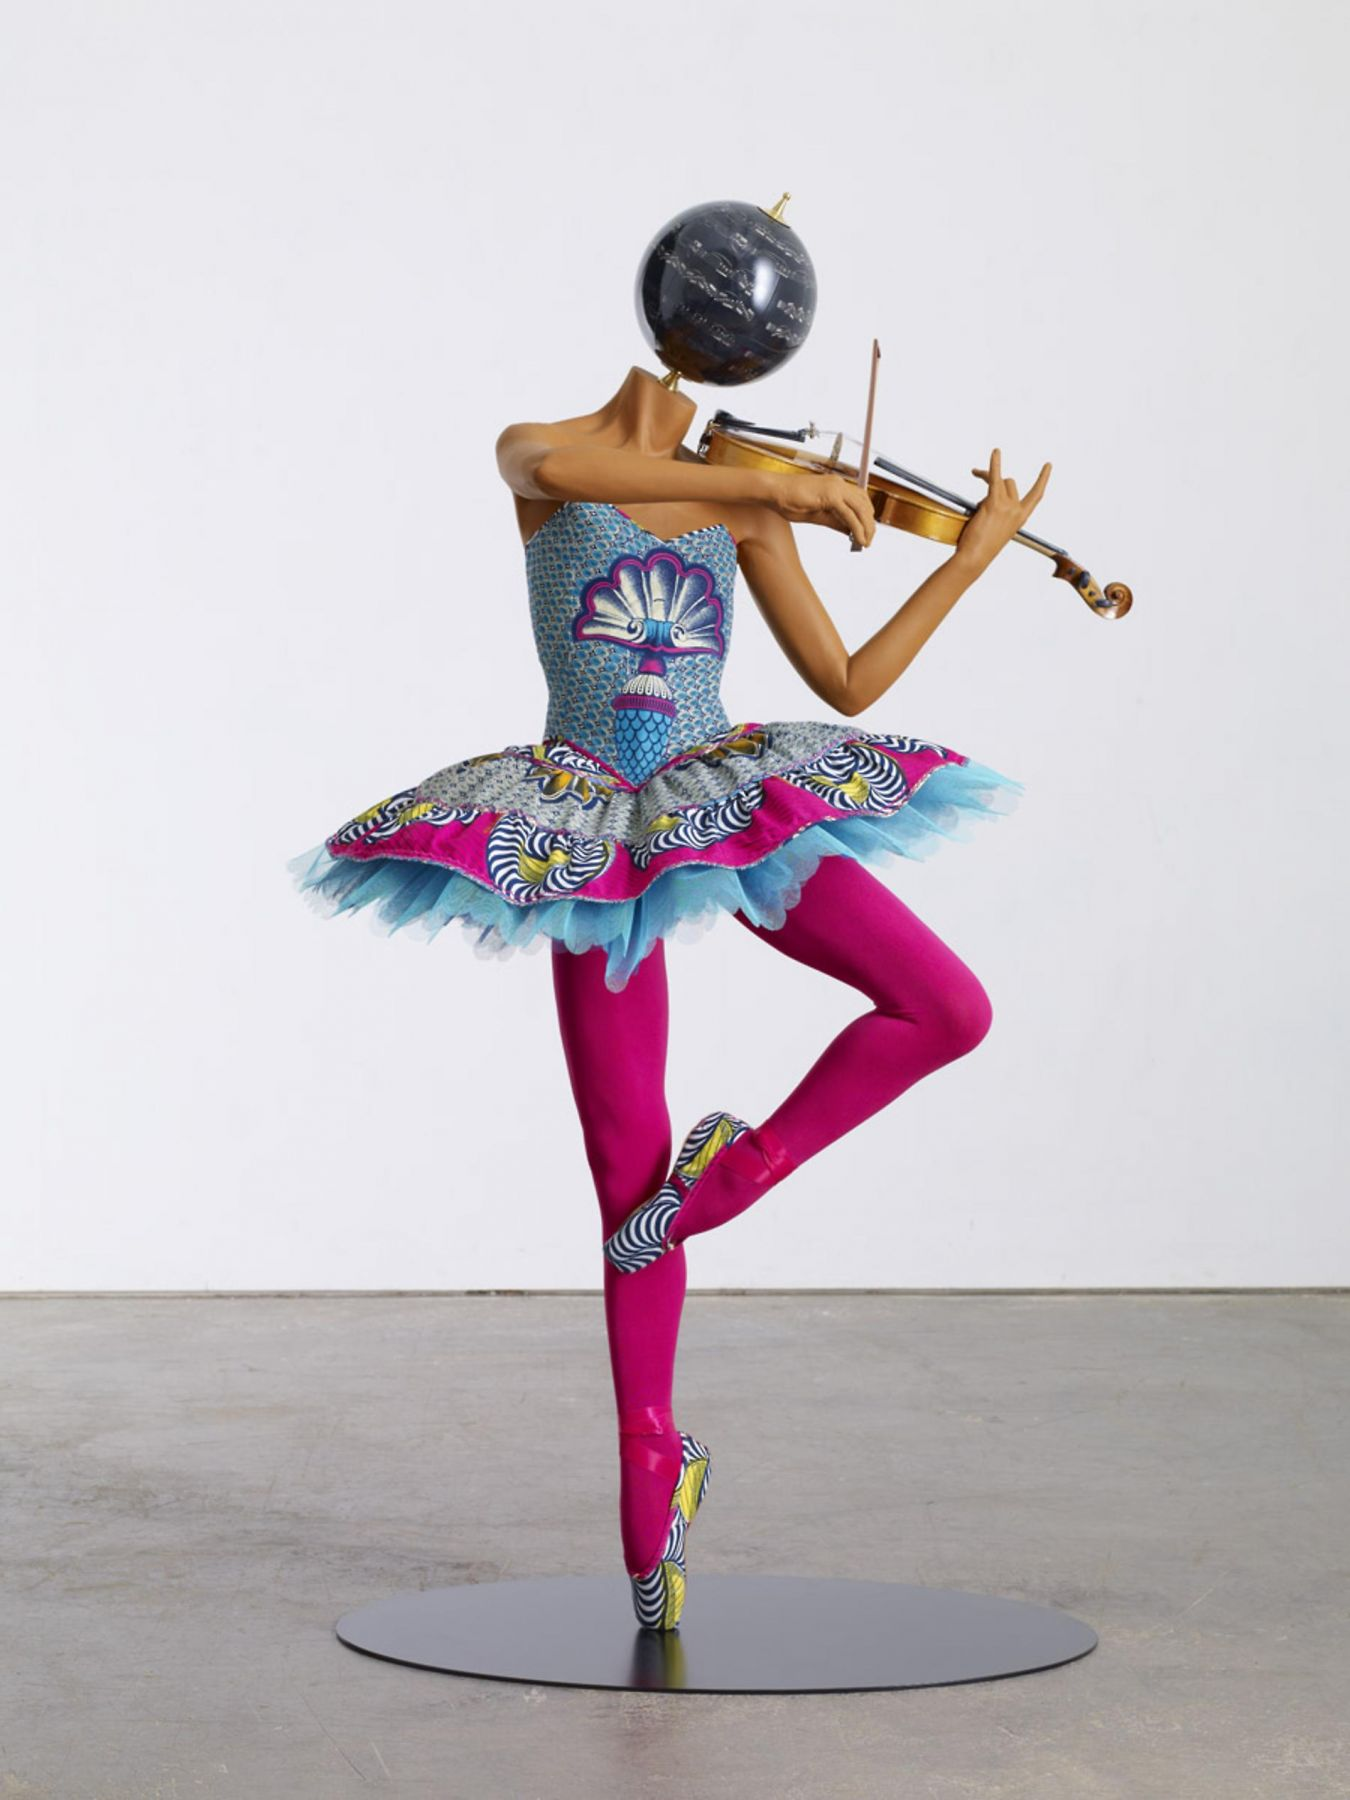 , YINKA SHONIBARE MBE, Ballerina With Violin (Giselle), 2013, Mannequin, Dutch wax African cotton textile, fibreglass, globe head, violin, pointe shoes, 55 x 37 x 29 3/16 in (140 x 94 x 75 cm)